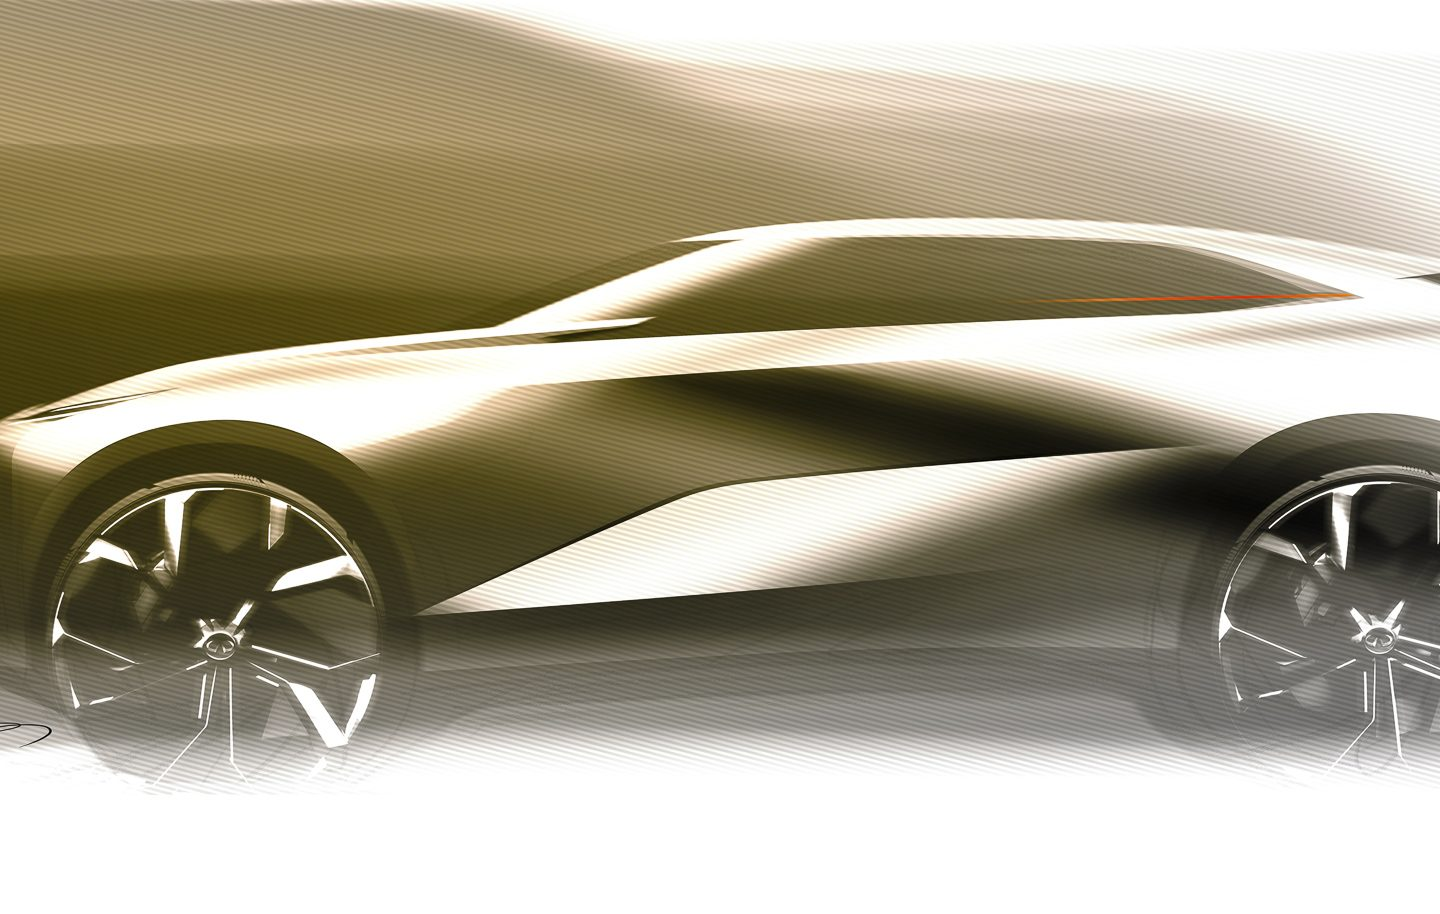 Will Batteries or Hydrogen Fuel Cells Be the Automotive Tech of the Future?